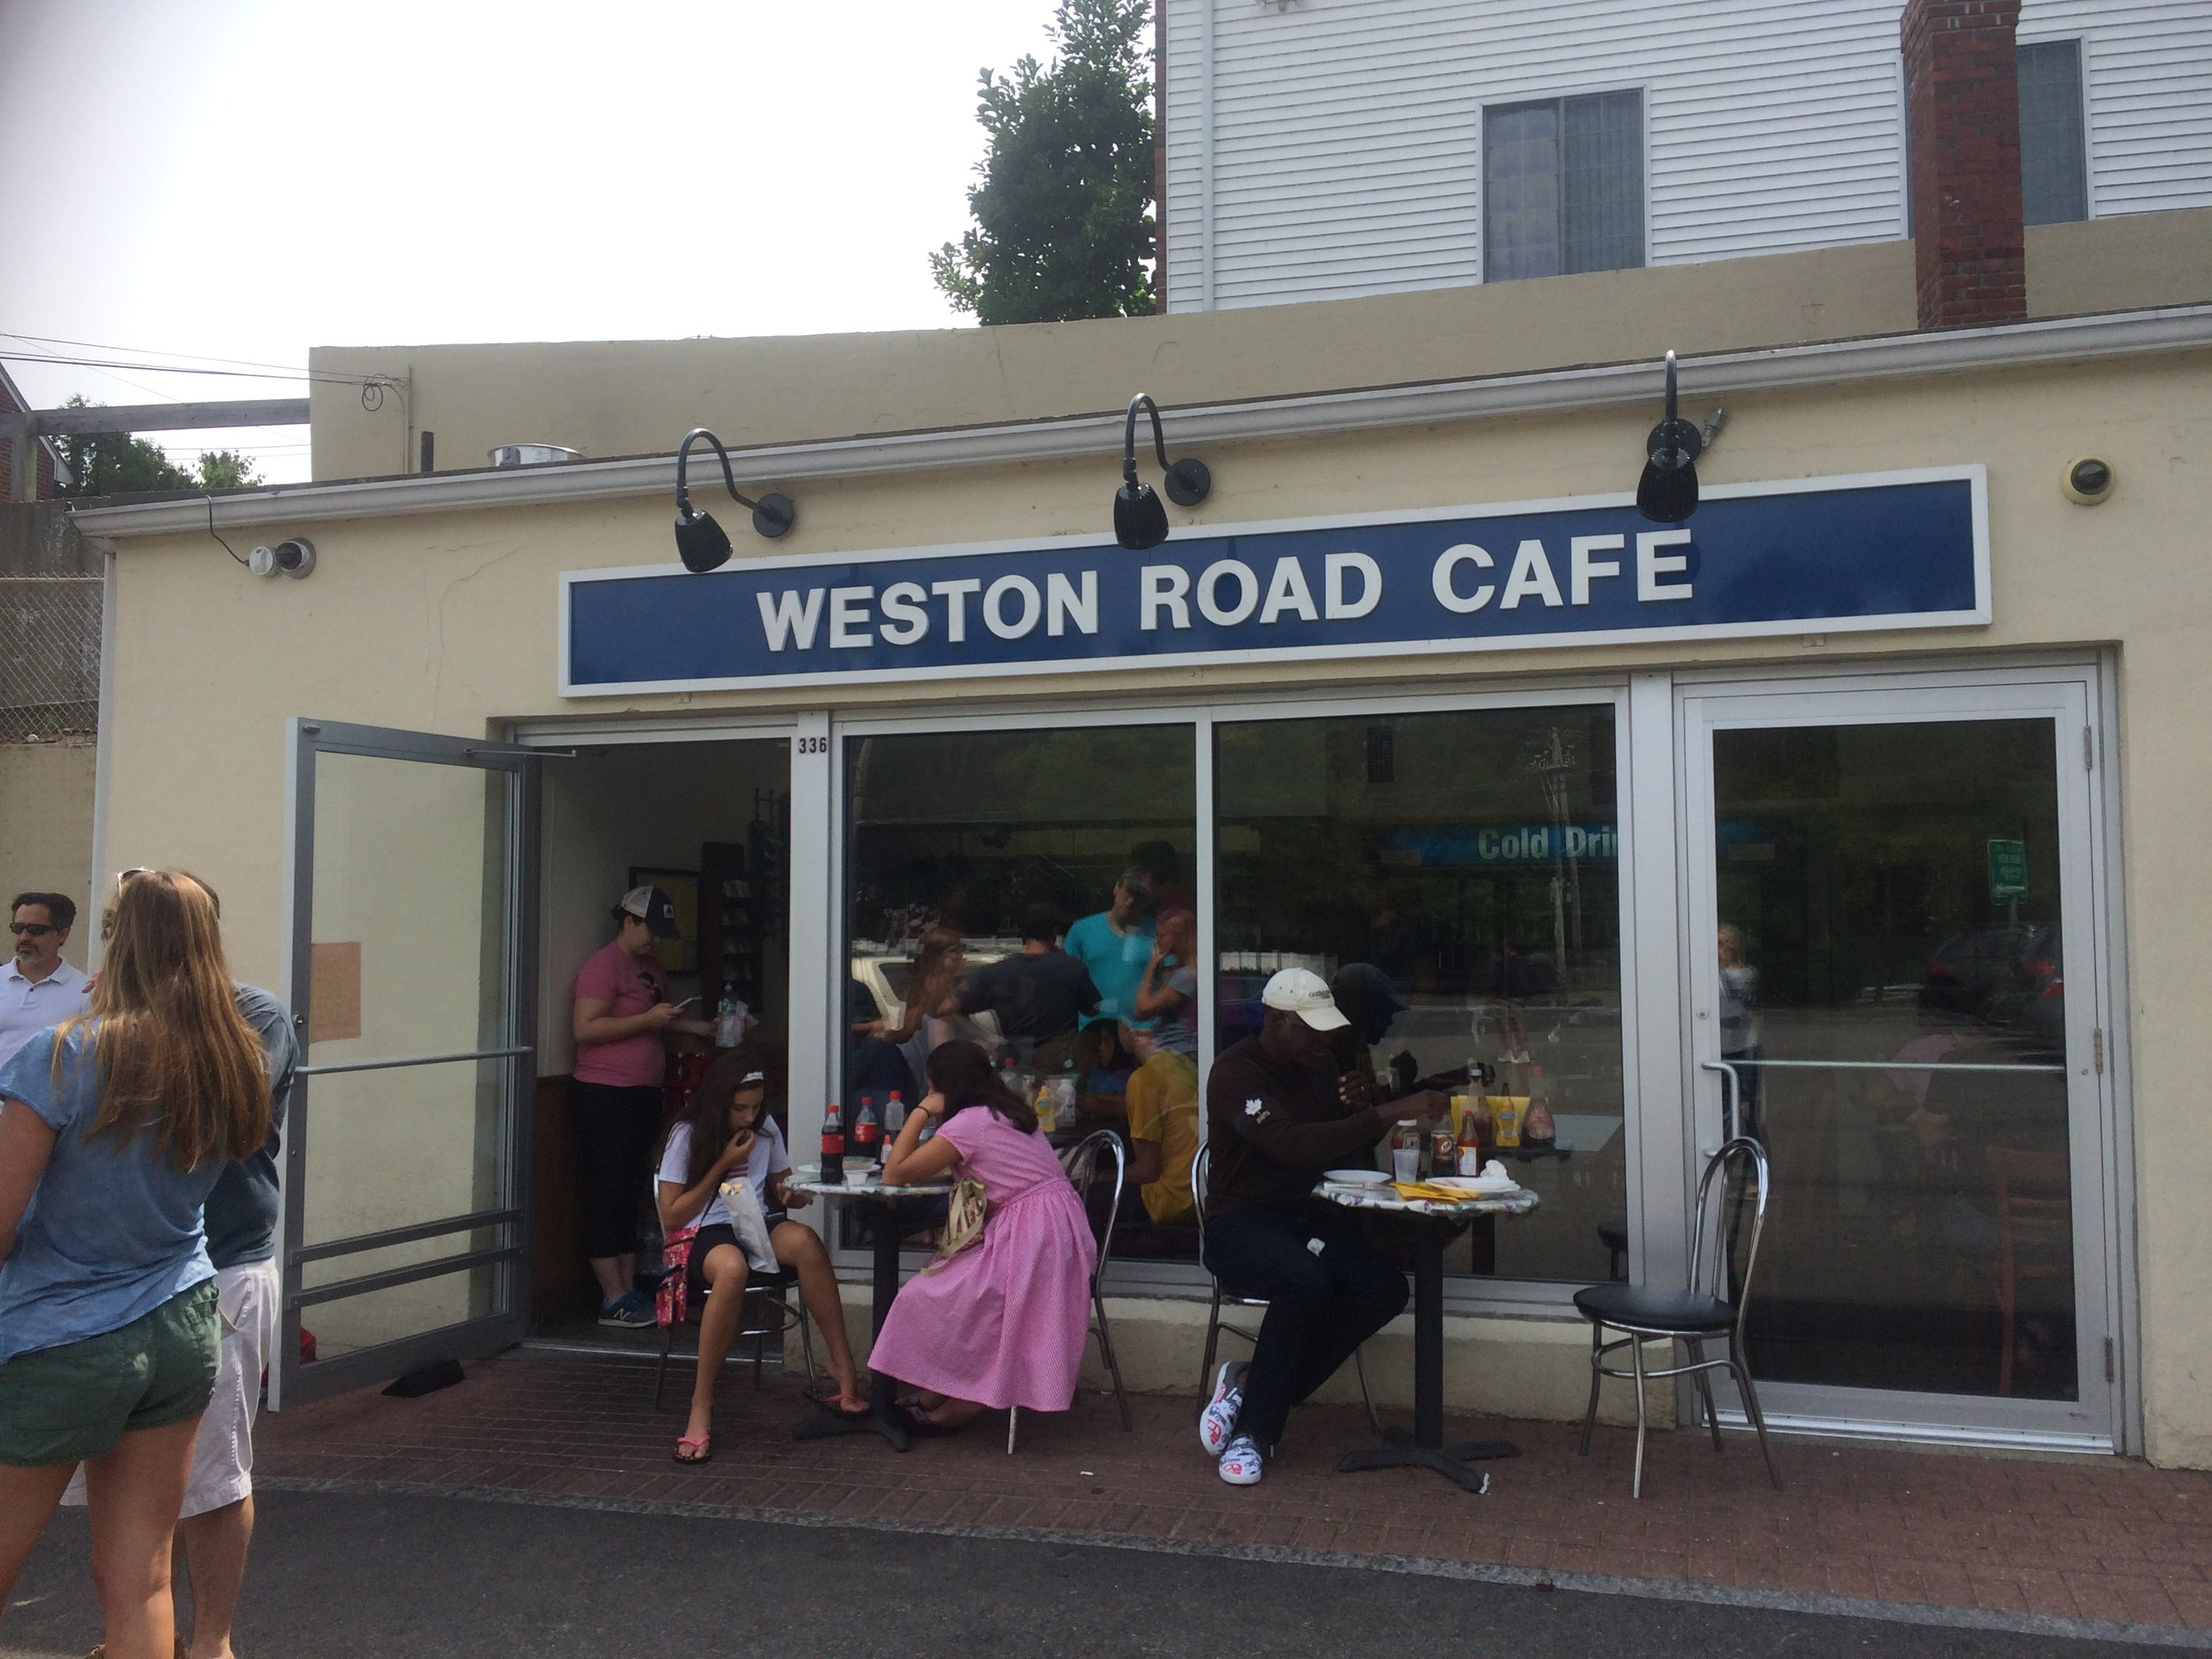 Weston Road Cafe